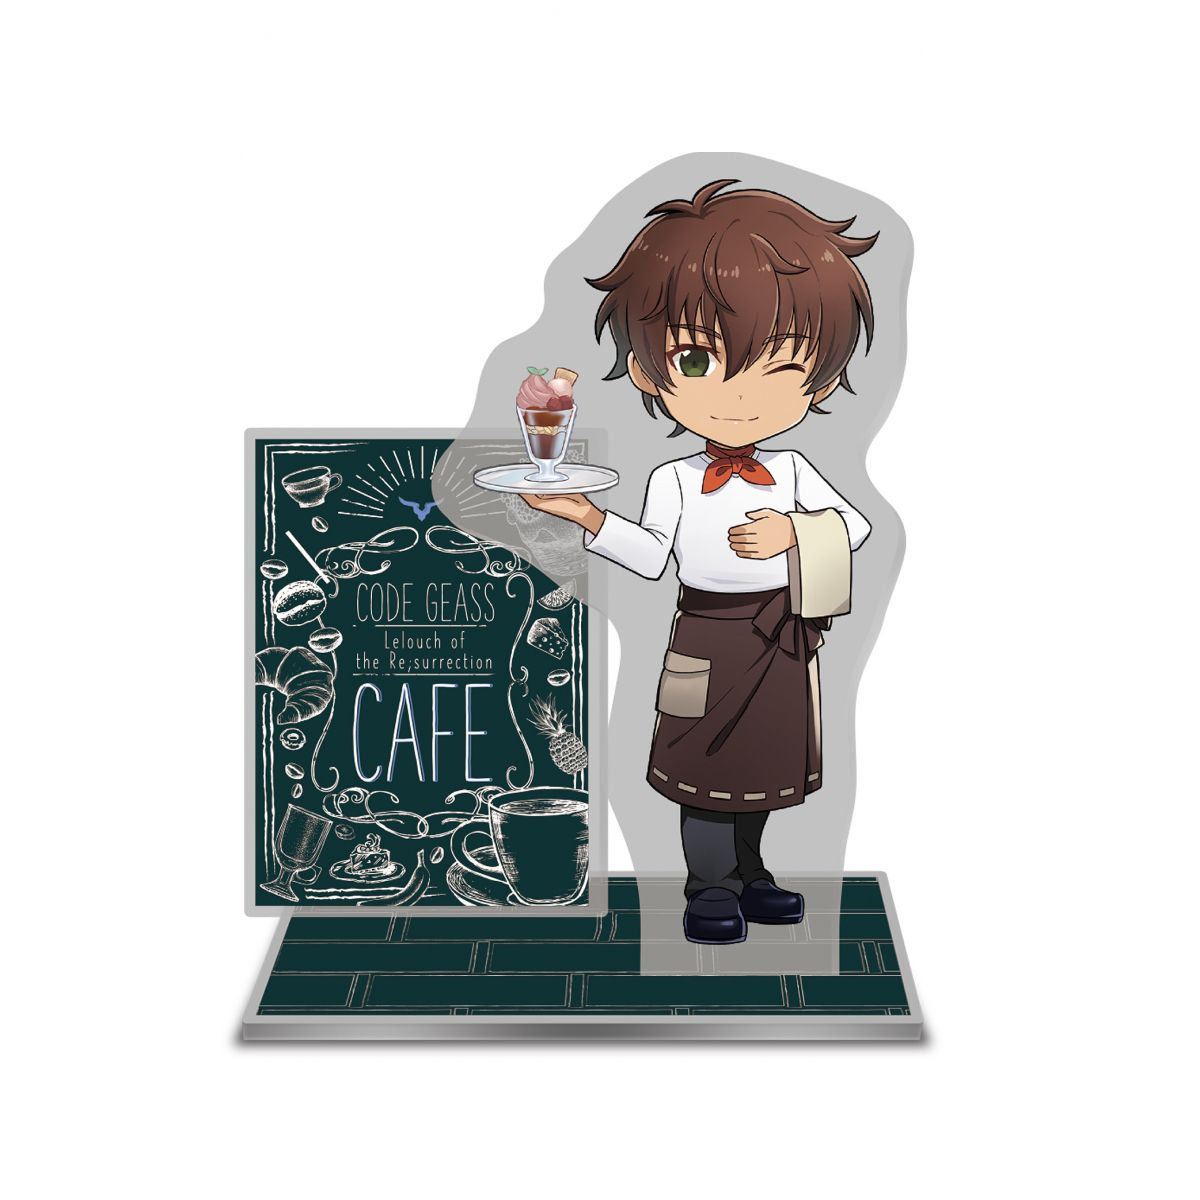 Merch at Code Geass Lelouch of the Resurrection Cafe ©SUNRISE/PROJECT L-GEASS Character Design ©2006-2018 CLAMP・ST